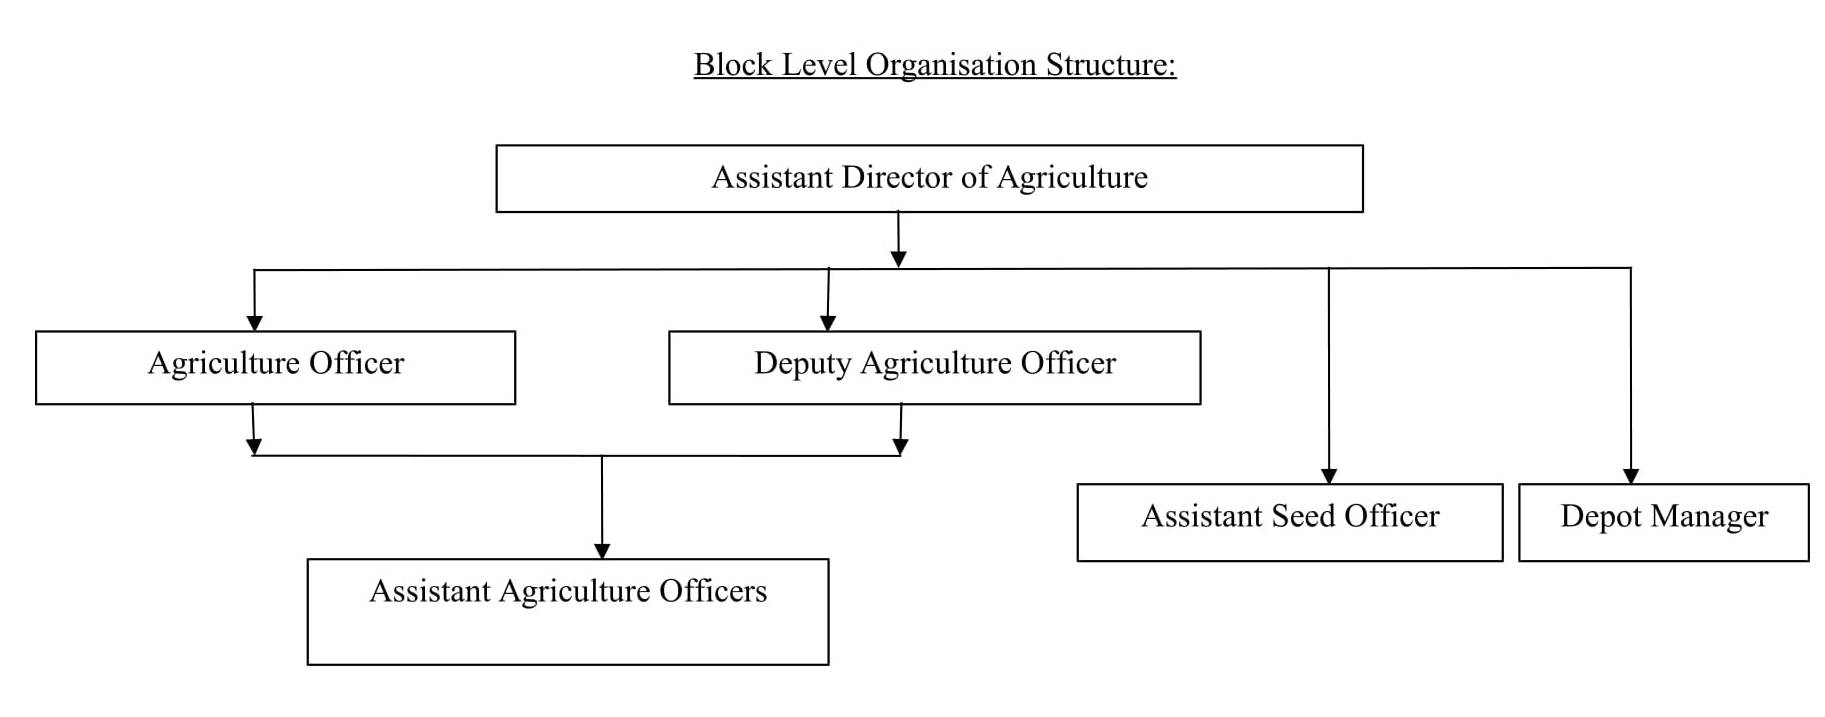 Agriculture Department - Block Level Organization Structure